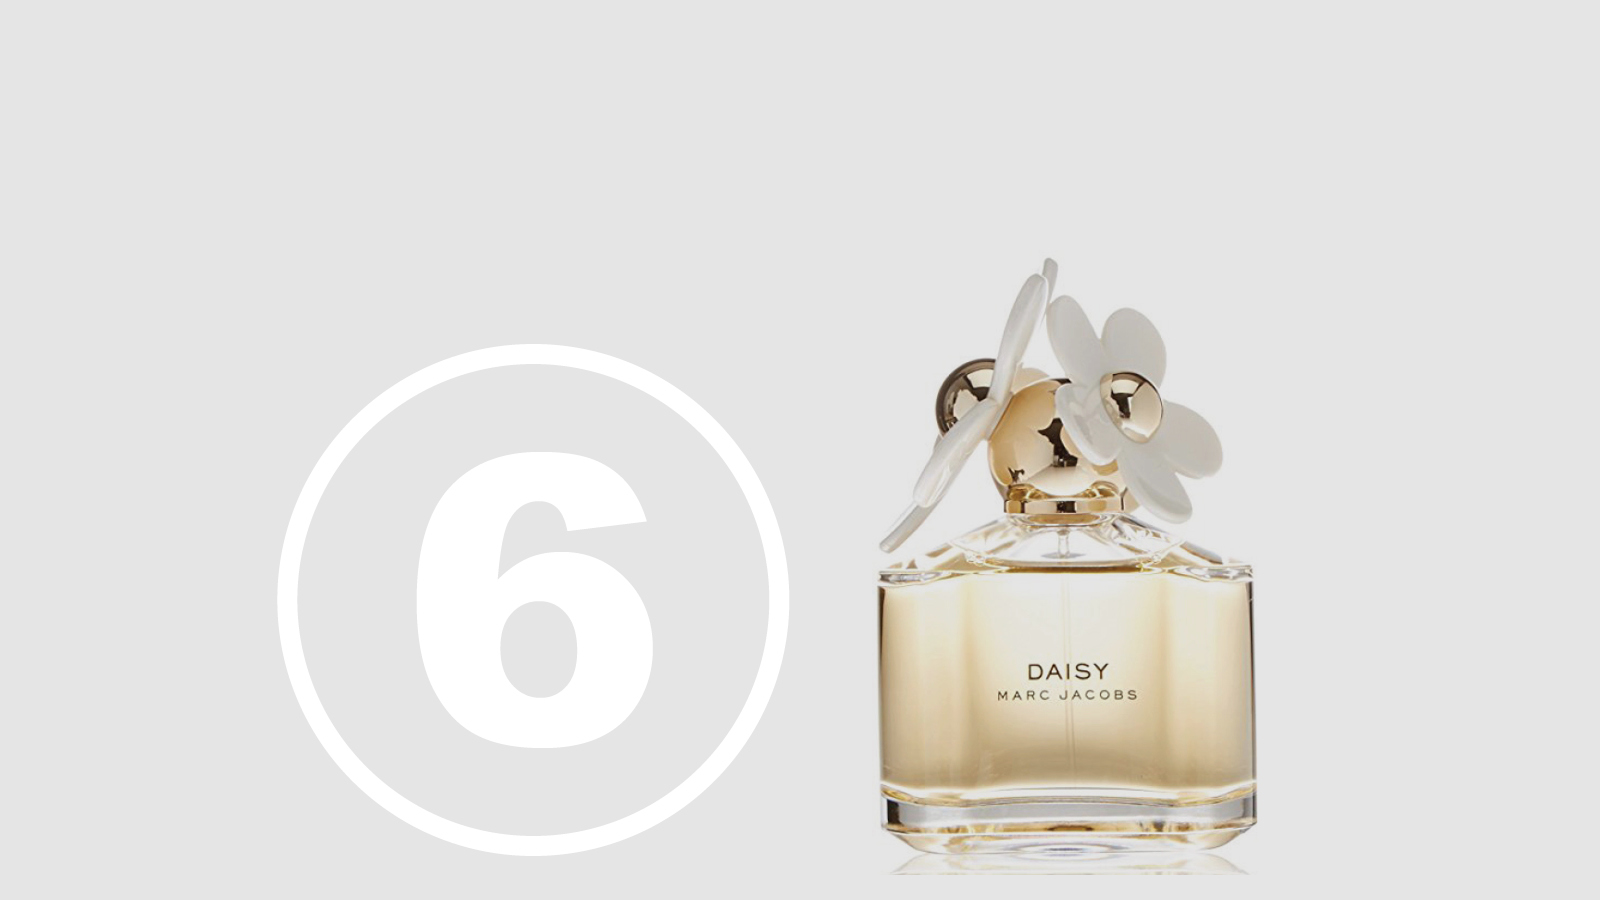 """<h5>Top Ten Most Hazardous Products</h5><h4>Marc Jacobs Daisy Perfume</h4><p>Another Coty fragrance that carries the famous designer's name and uses beatific, radiant young girls in its marketing campaigns.<br />We found <span class=""""highlight"""">14 chemicals</span> chemicals linked to chronic health effects with <span class=""""highlight"""">100% hidden in """"fragrance.""""</span></p>"""